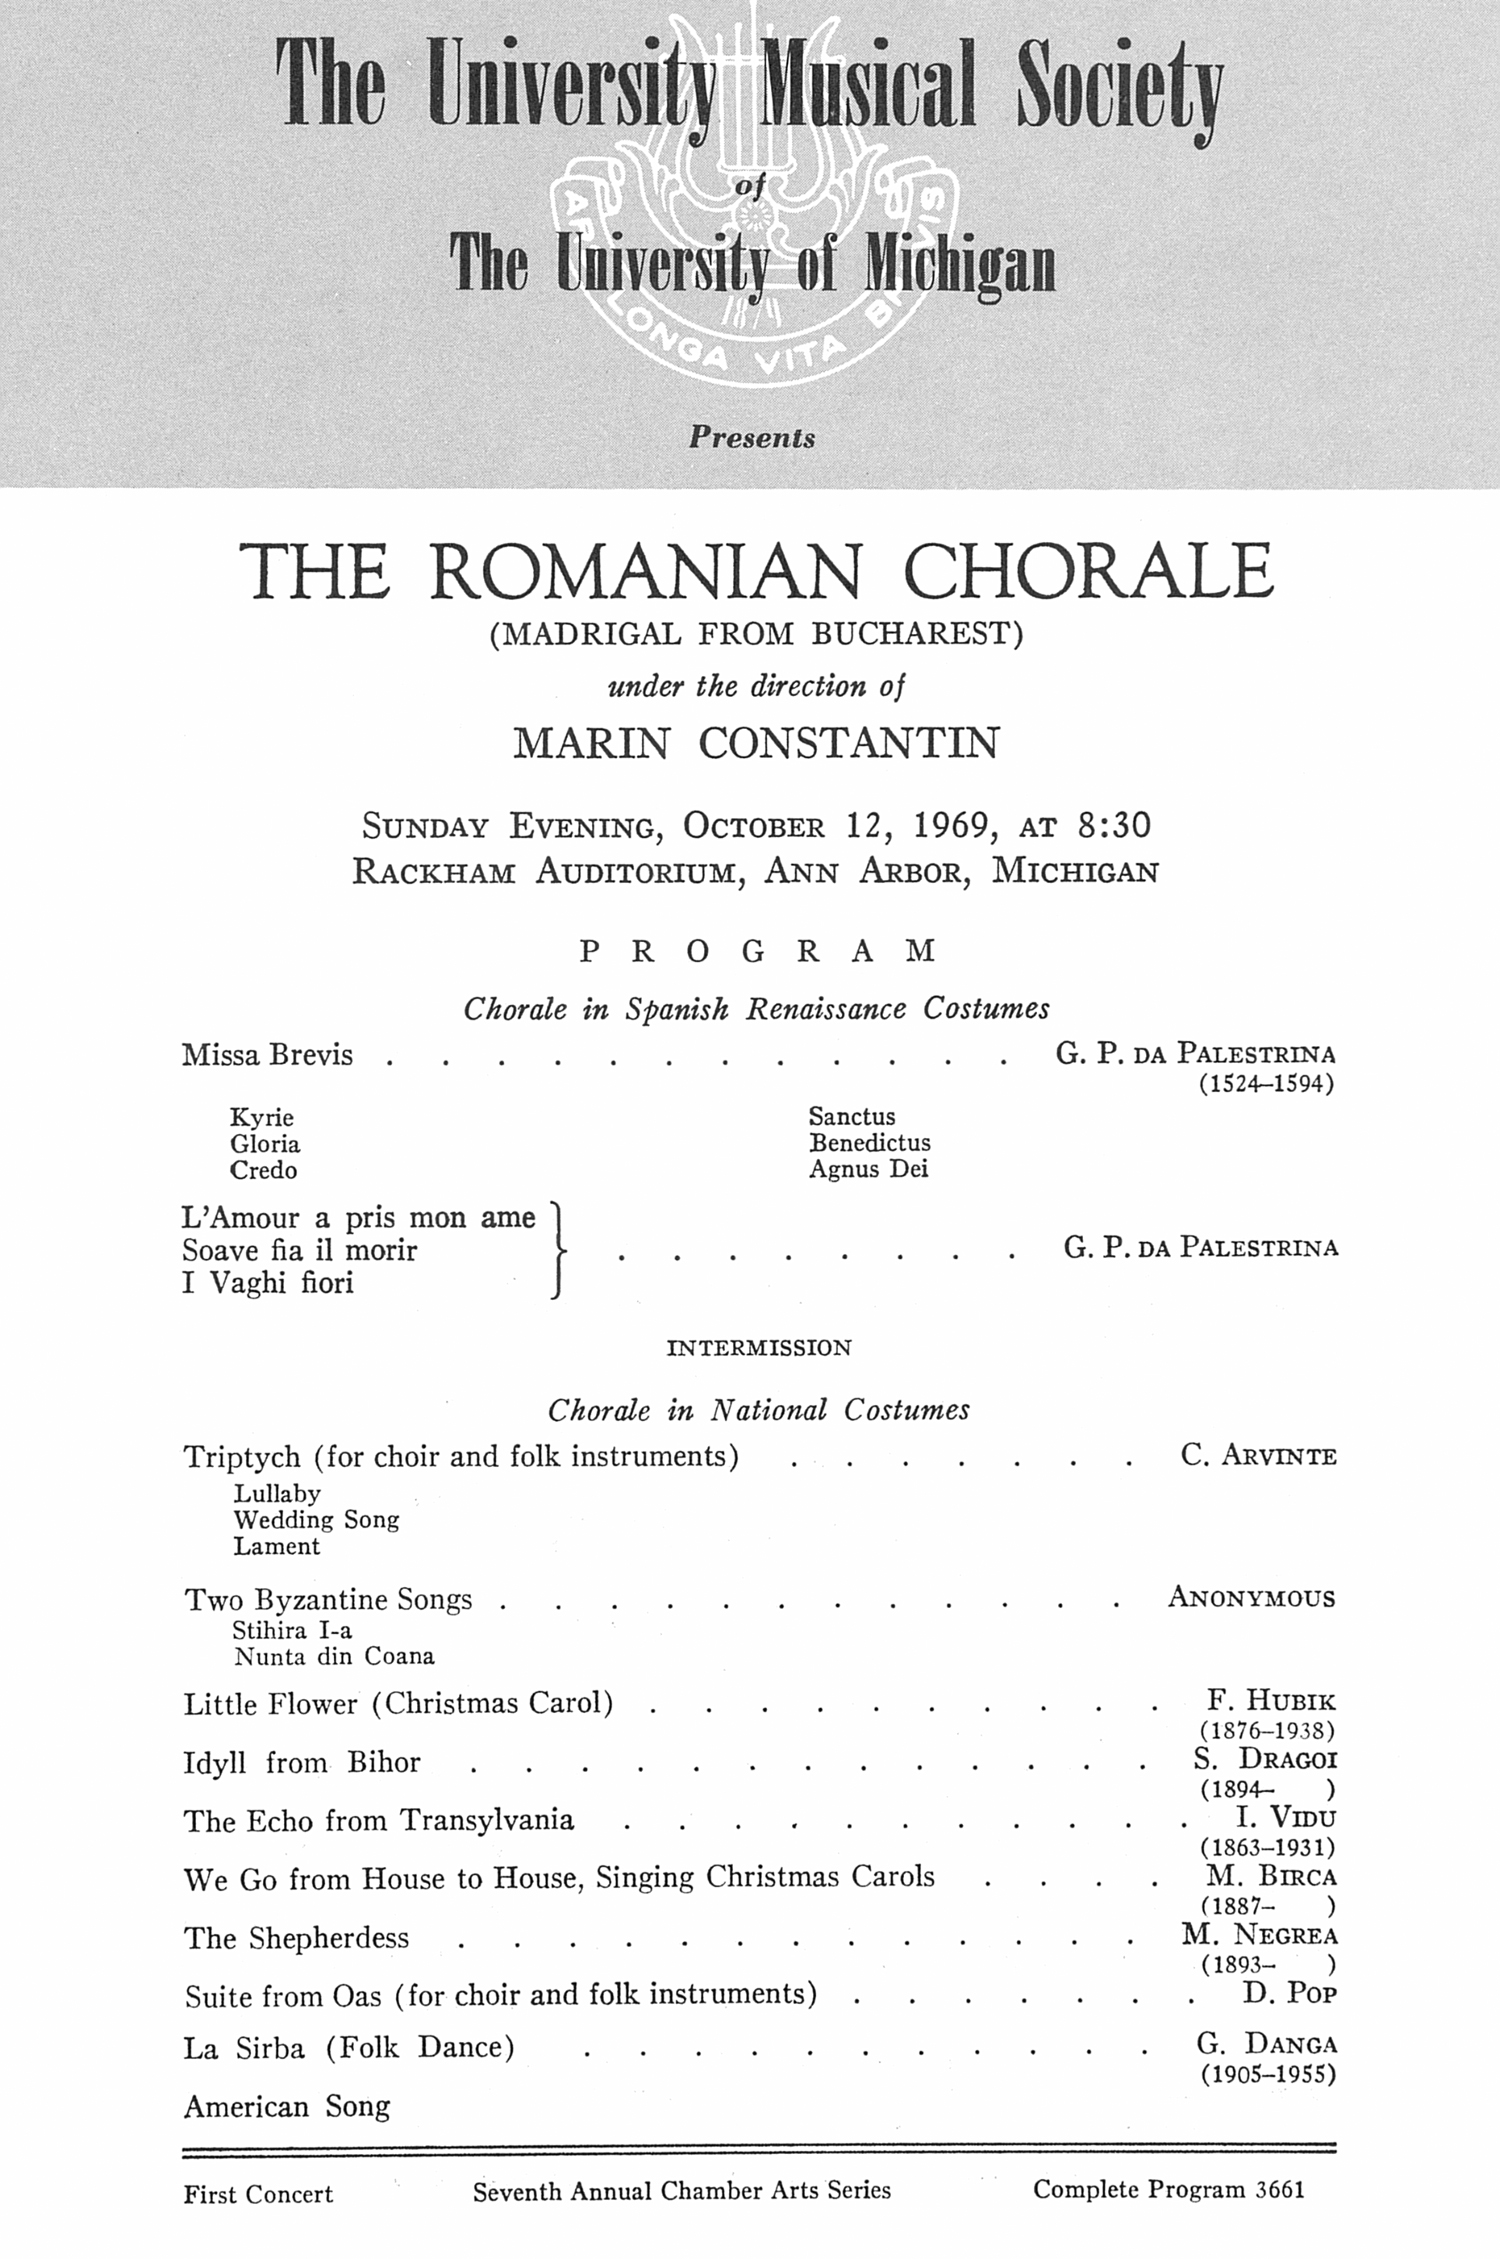 UMS Concert Program, October 12, 1969: The Romanian Chorale -- Marin Constantin image